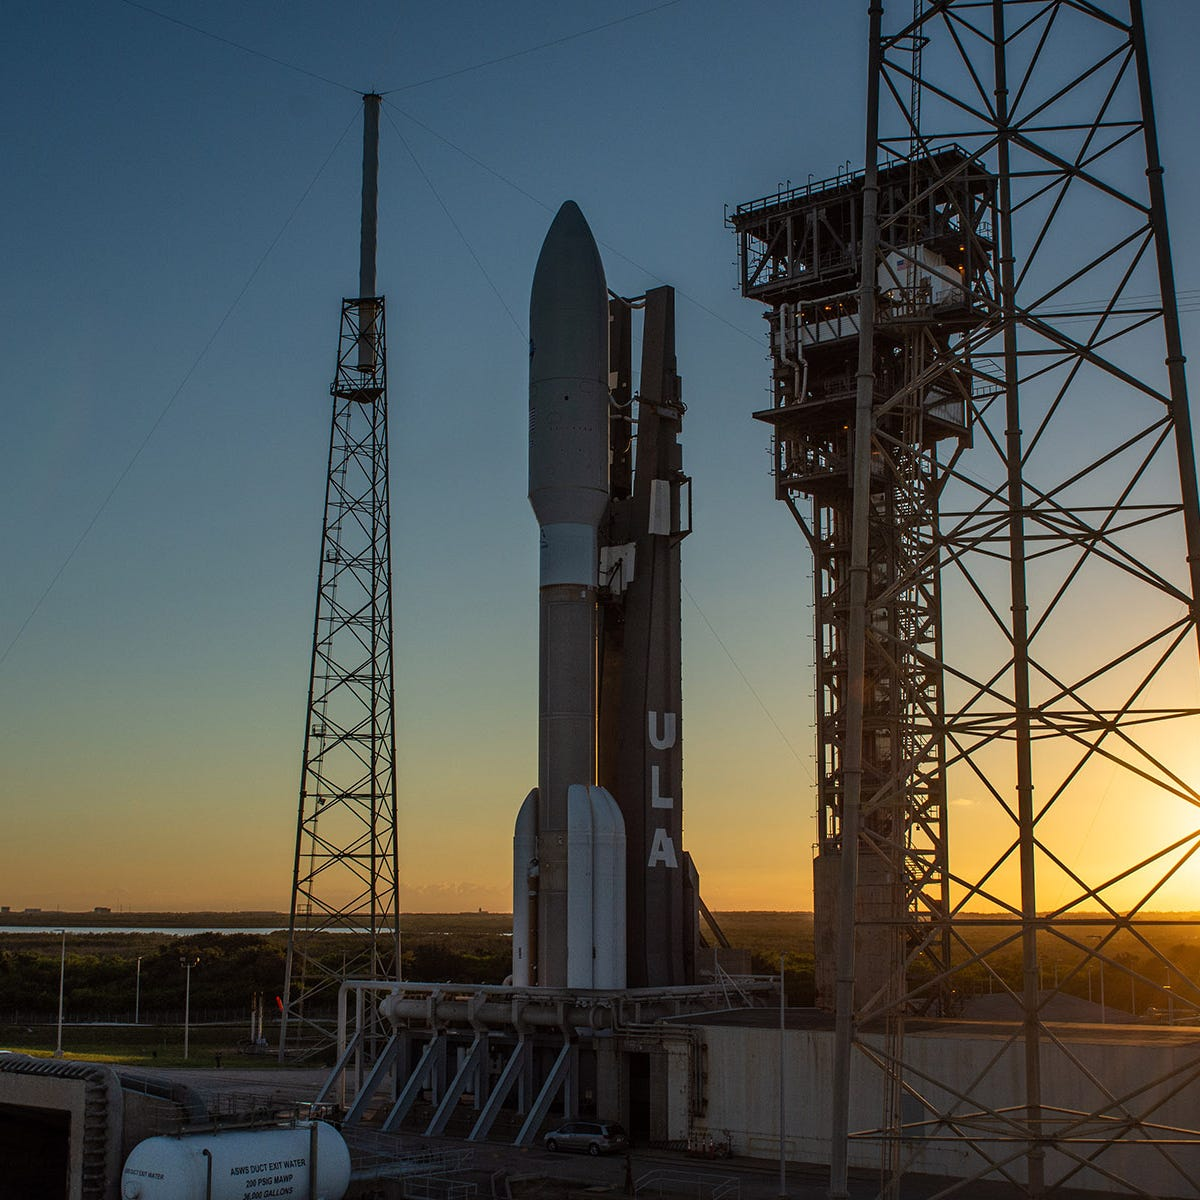 Updates: ULA Atlas V rocket launches $1.8 billion Air Force satellite from Cape Canaveral